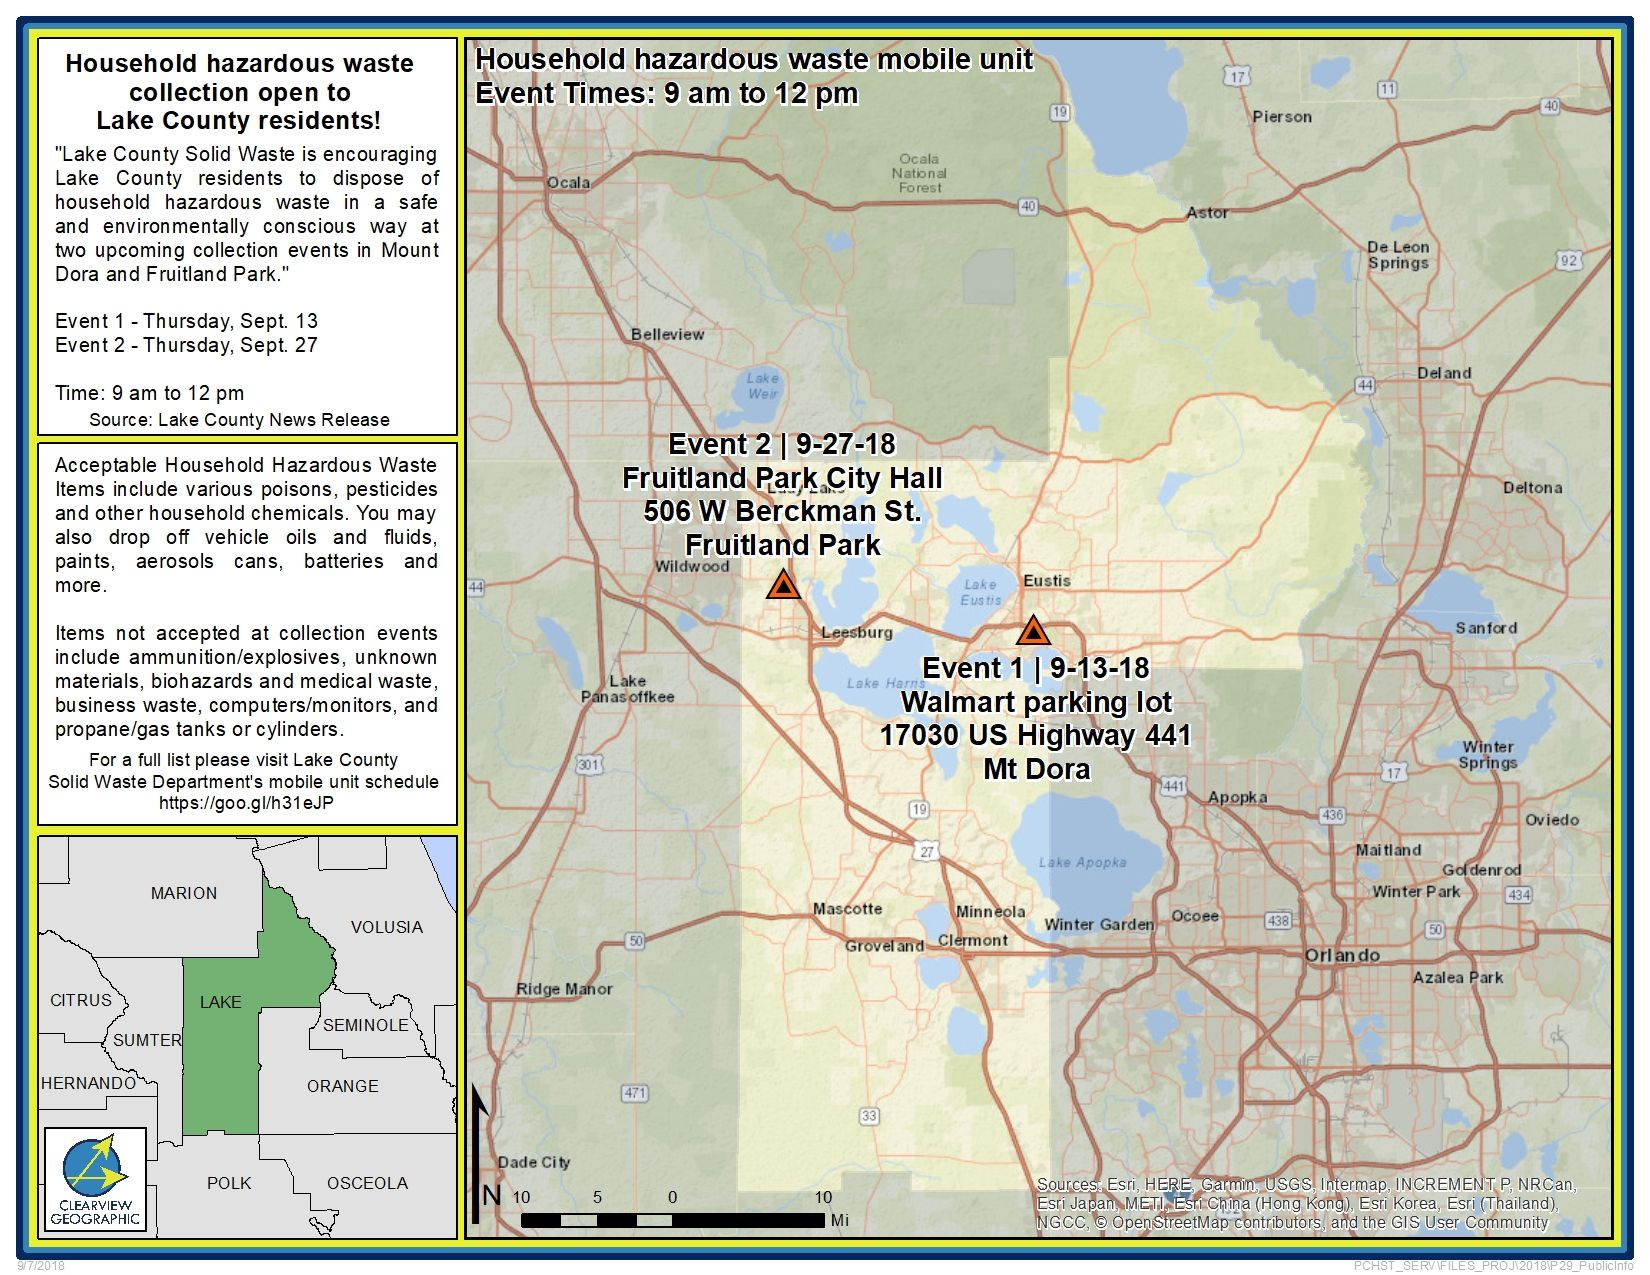 Lake County Florida Map.This Month Lake County S Hazardous Waste Mobile Unit Is Hosting Two